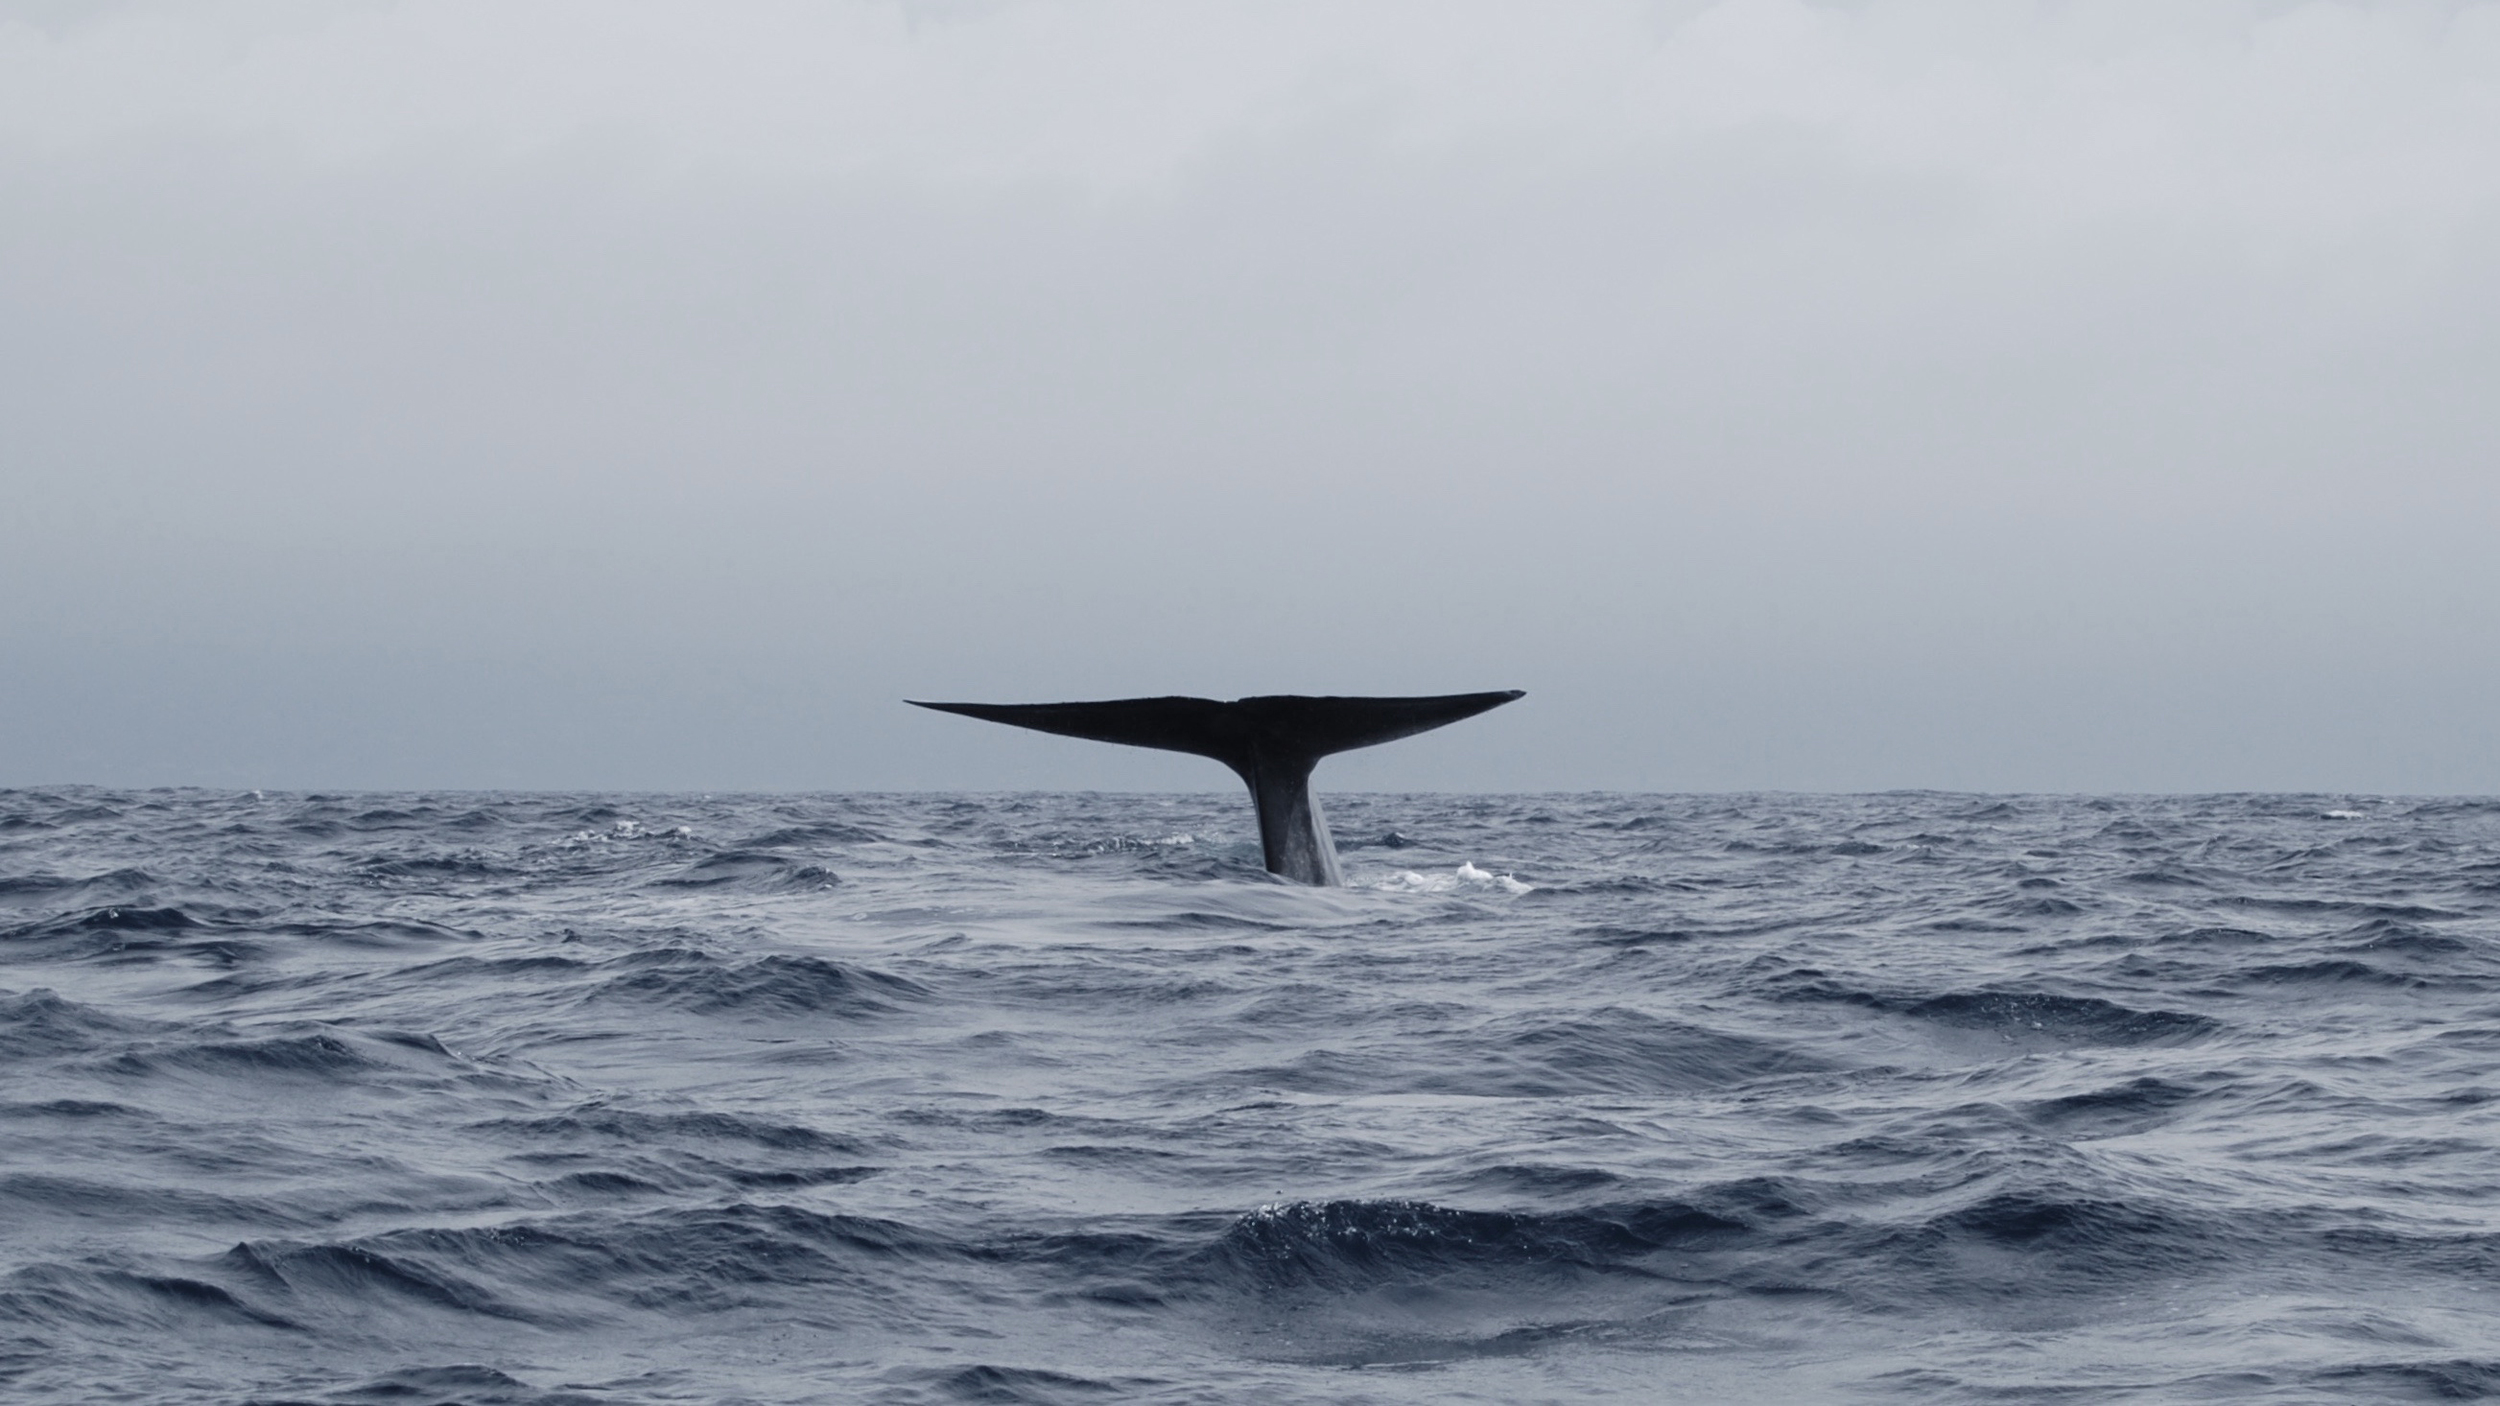 Diving blue whale off Pico, The Azores: Photo by Philip Hoare